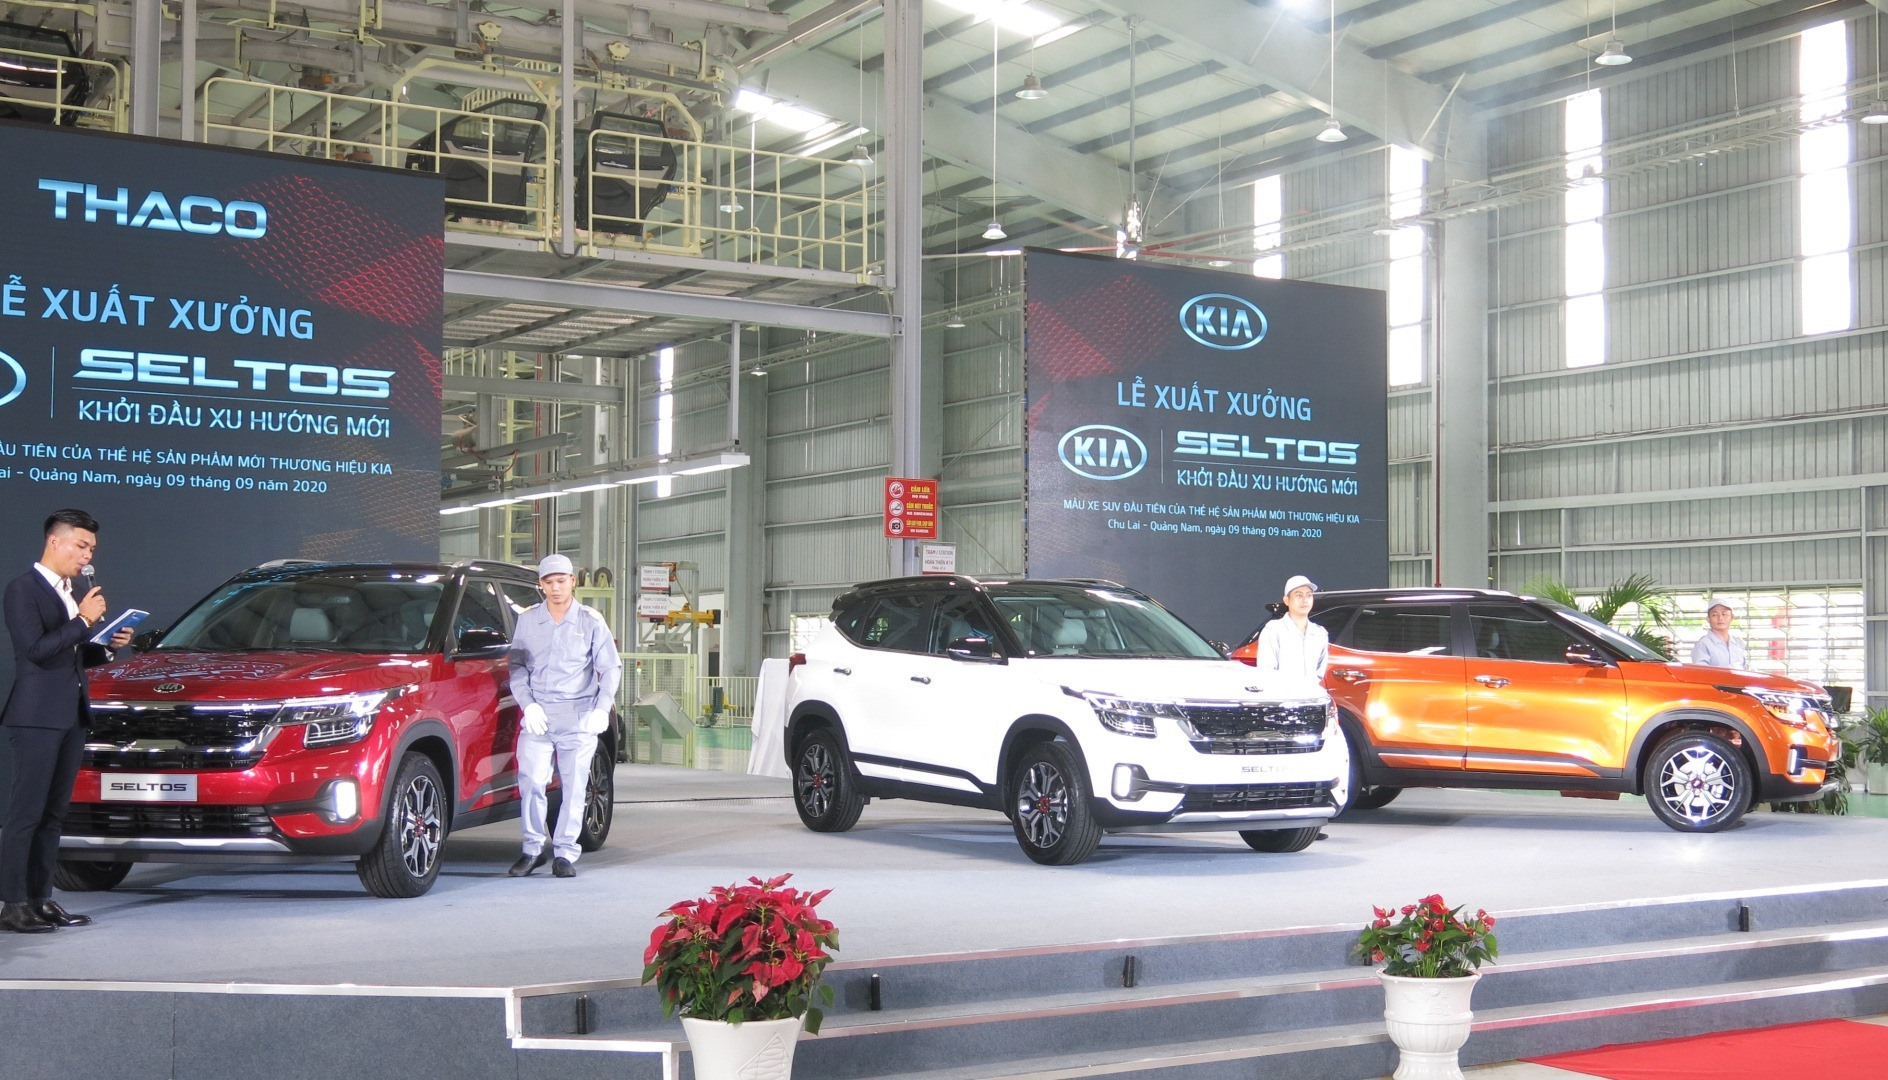 Thaco rolled out Kia Seltos passenger cars in September, 2020